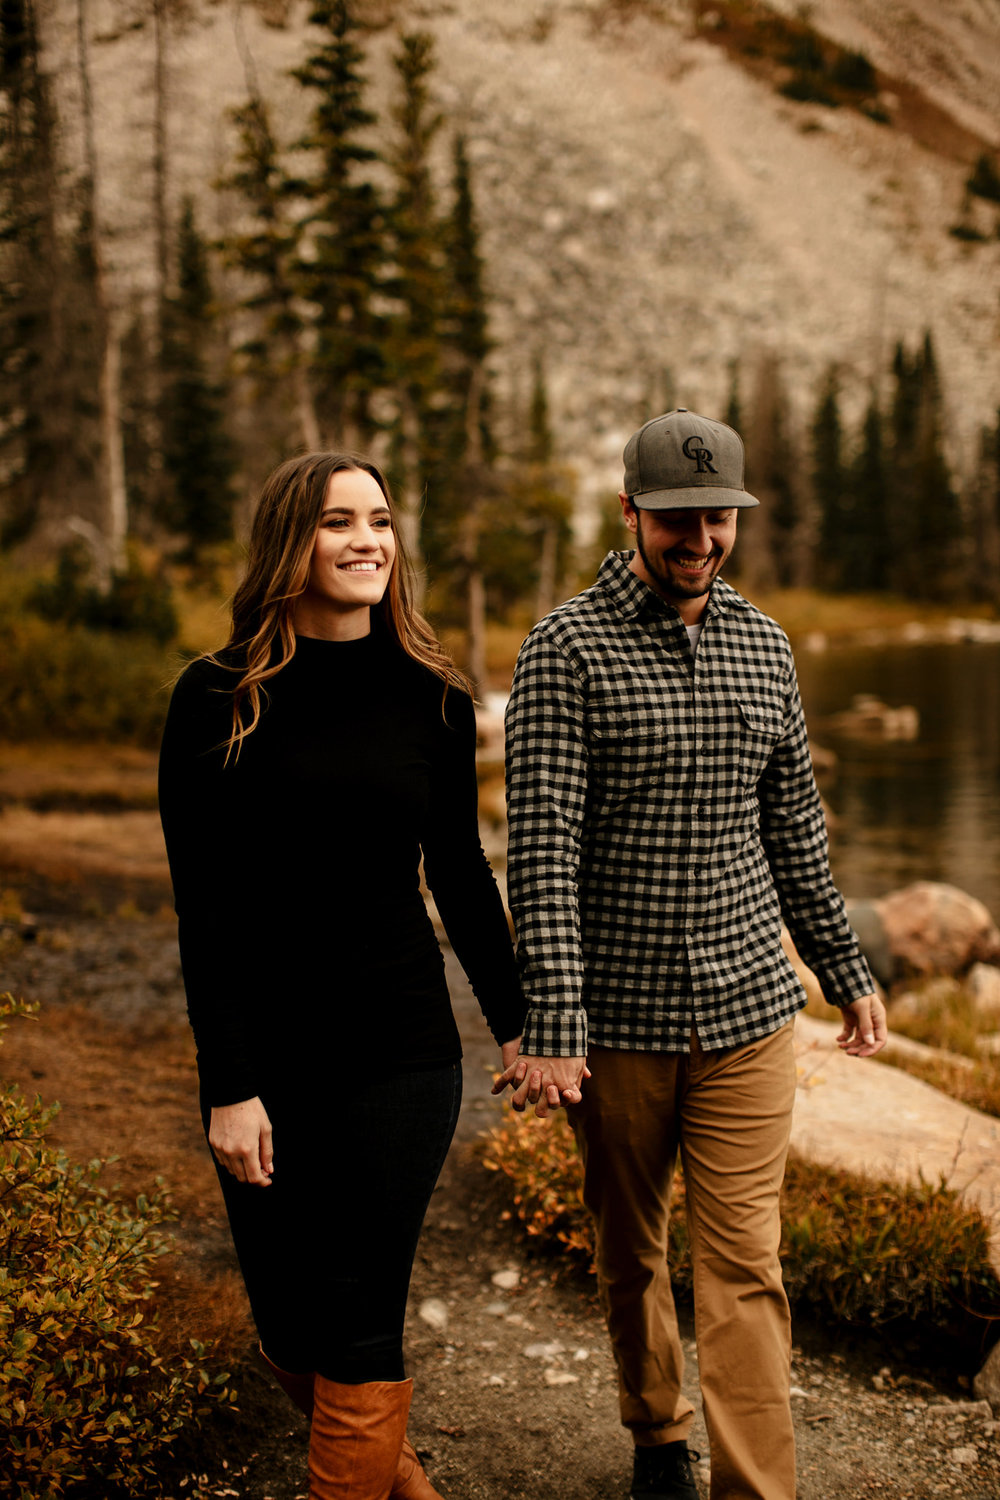 Liz Osban Photography Cheyenne Wyoming Engagement Wedding Photographer couple adventure elopement wedding laramie denver fort collins colorado rocky mountain national park18.jpg